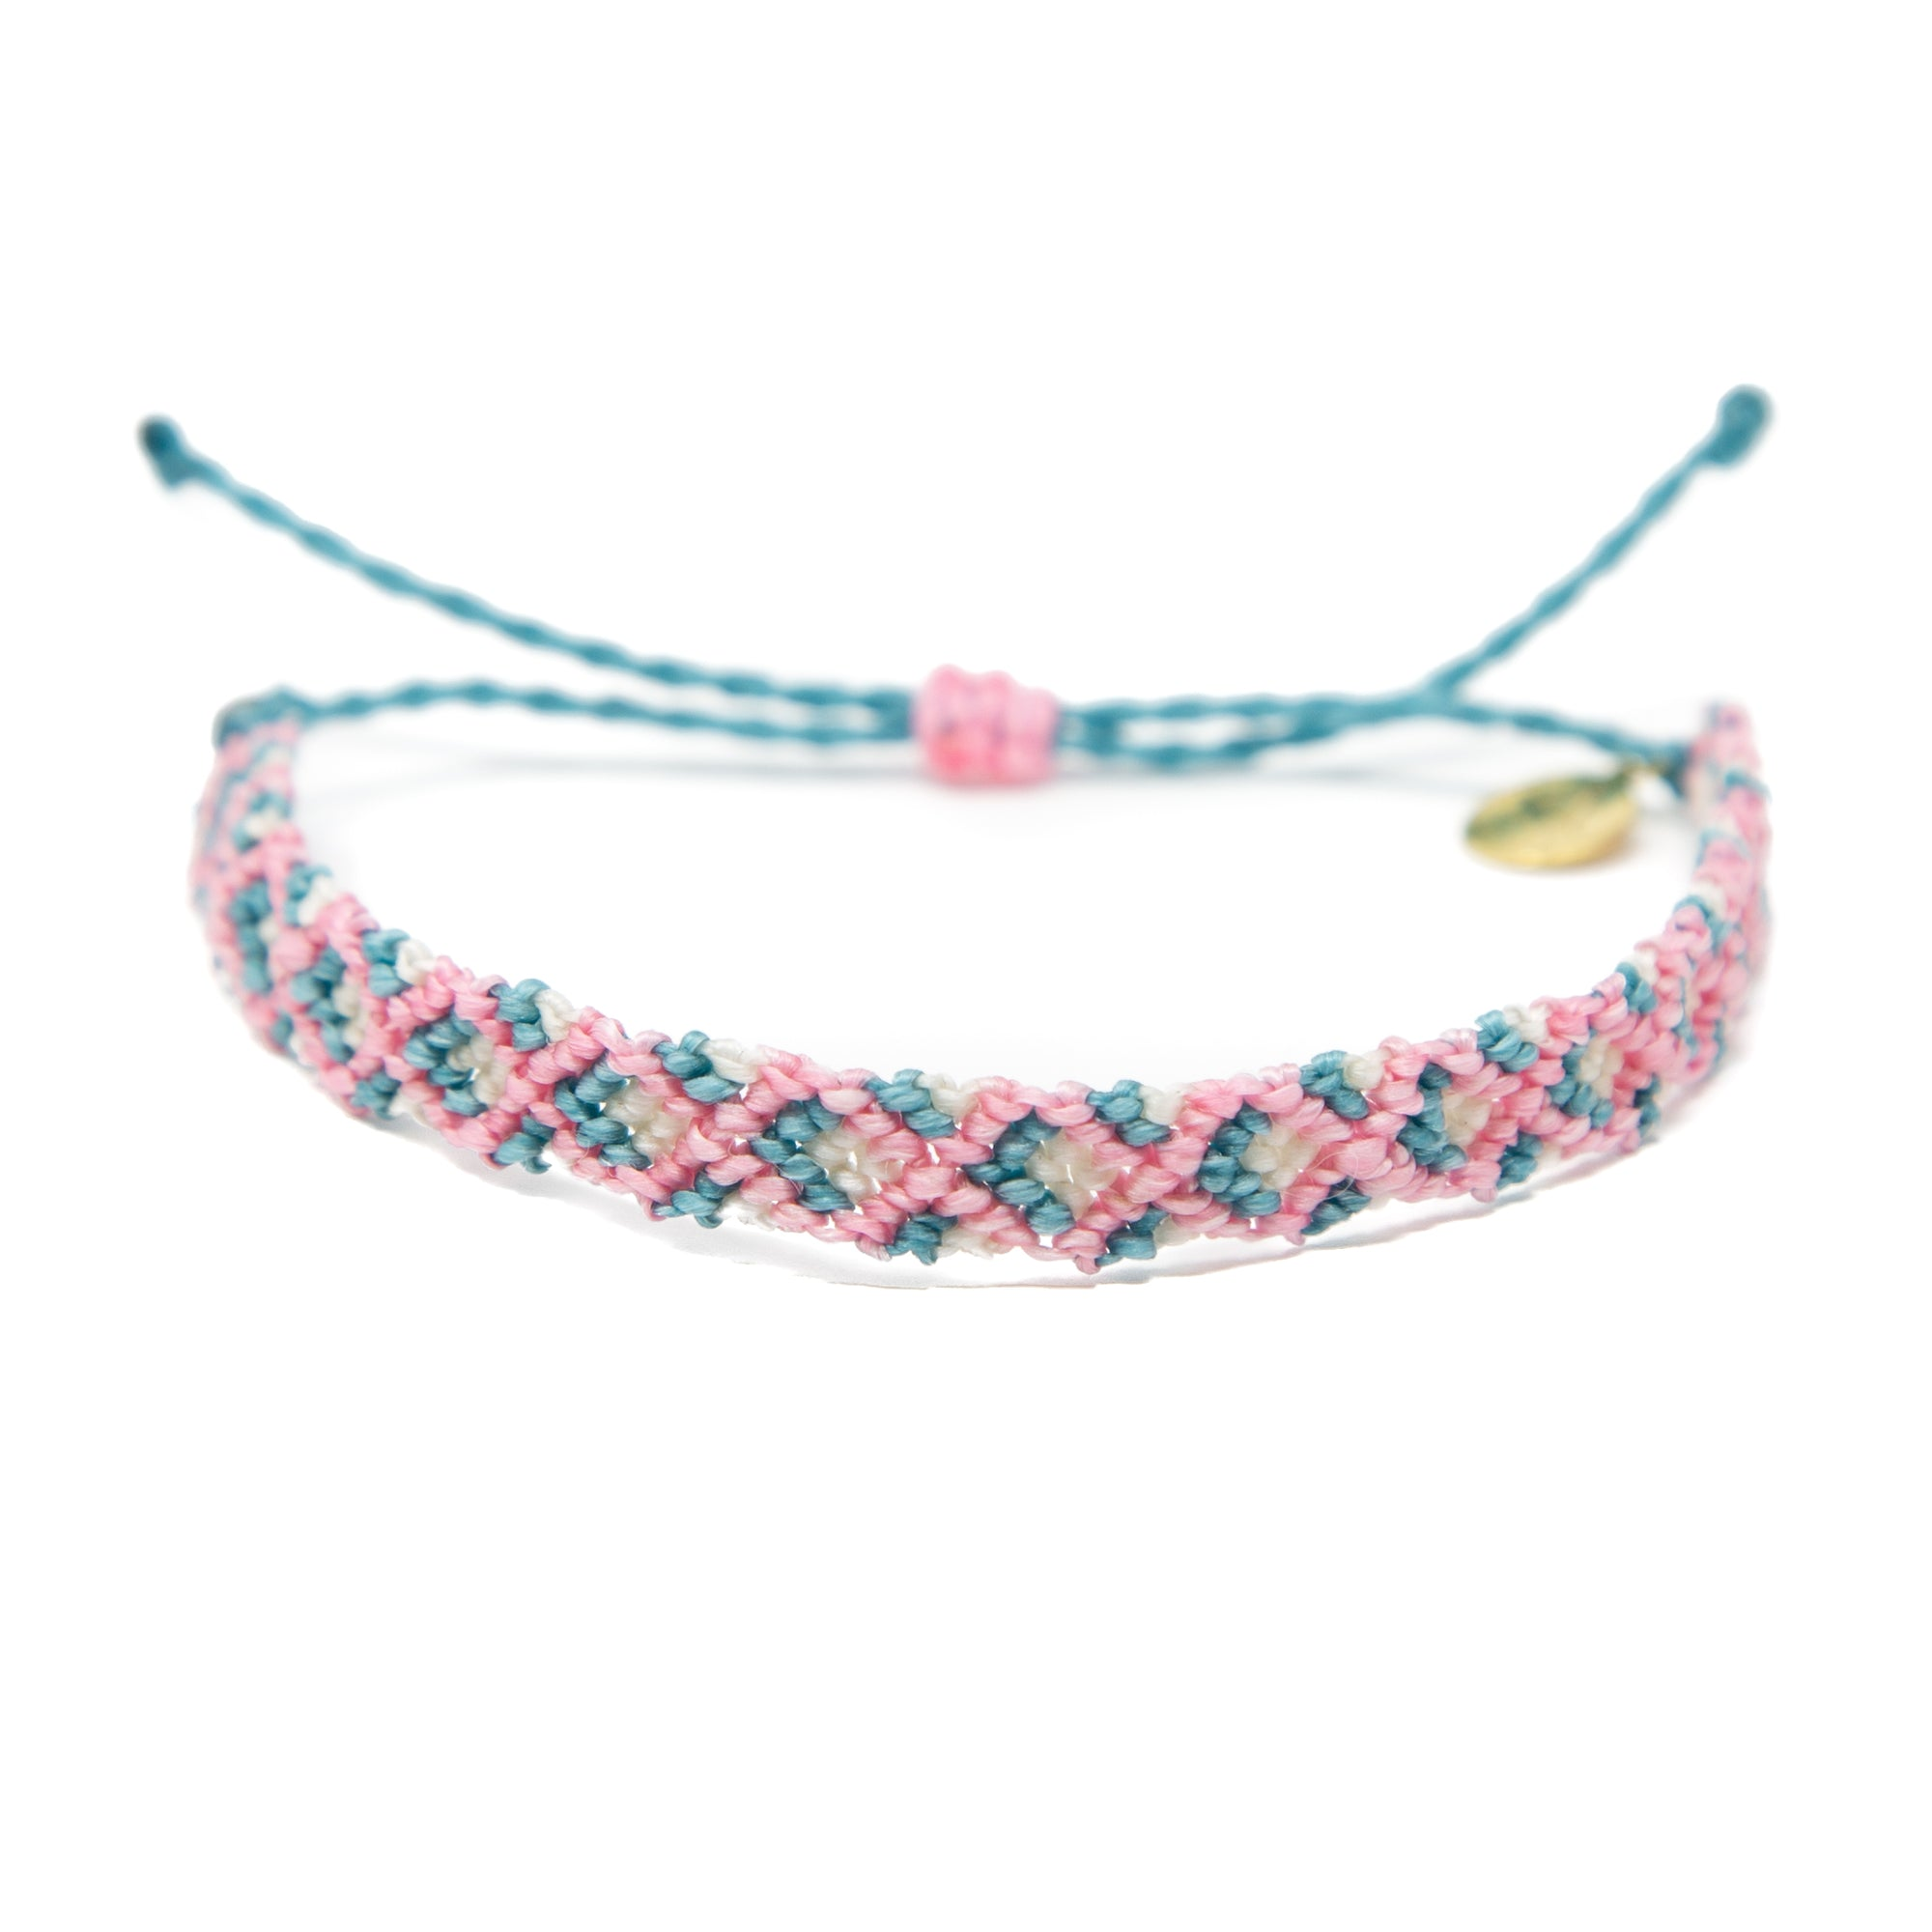 Pink & Teal Double Diamond Friendship Bracelet